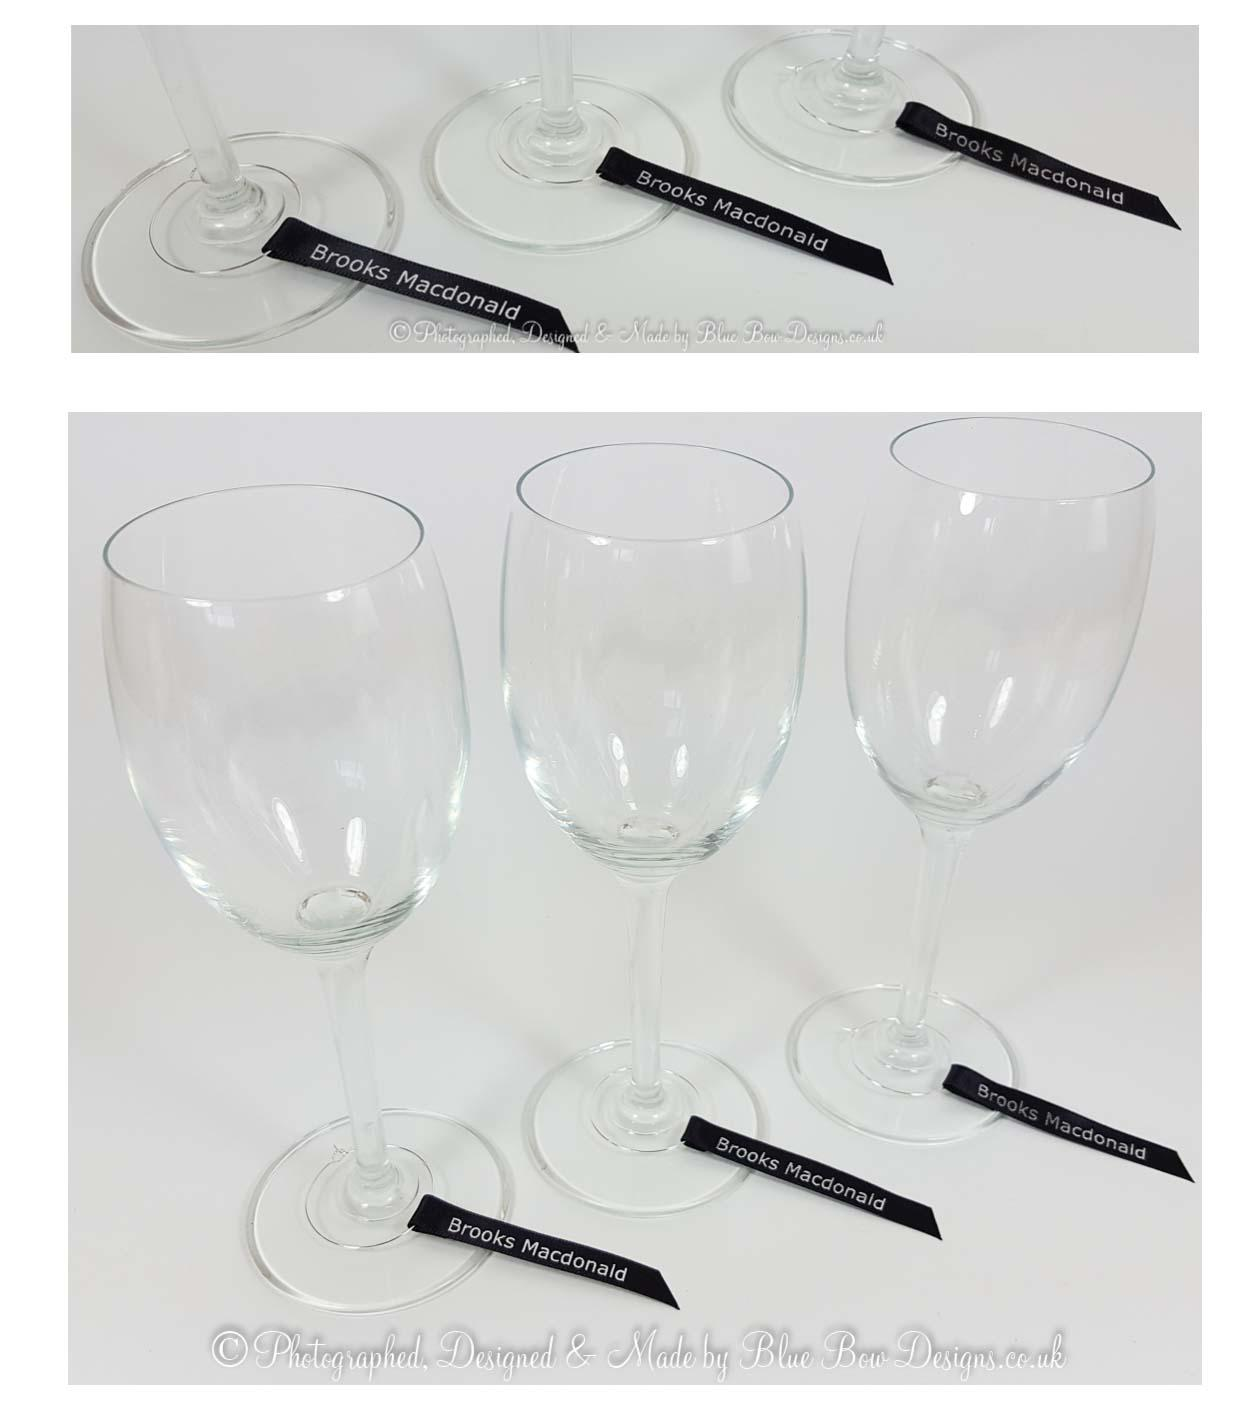 Black wine glass ribbons